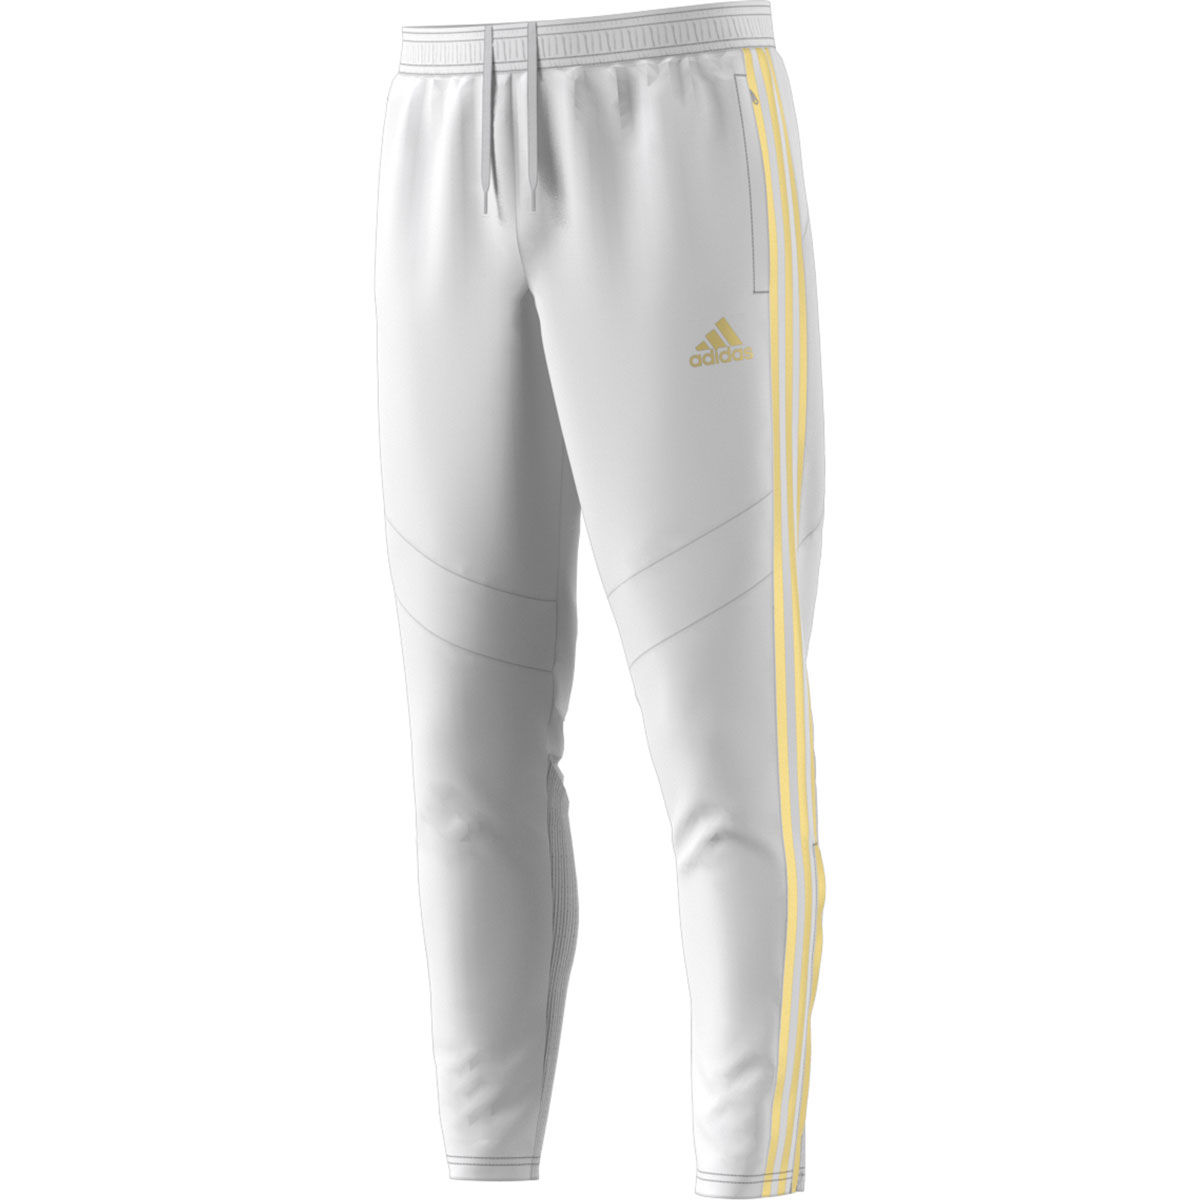 adidas Tiro 19 Mens Training Pant